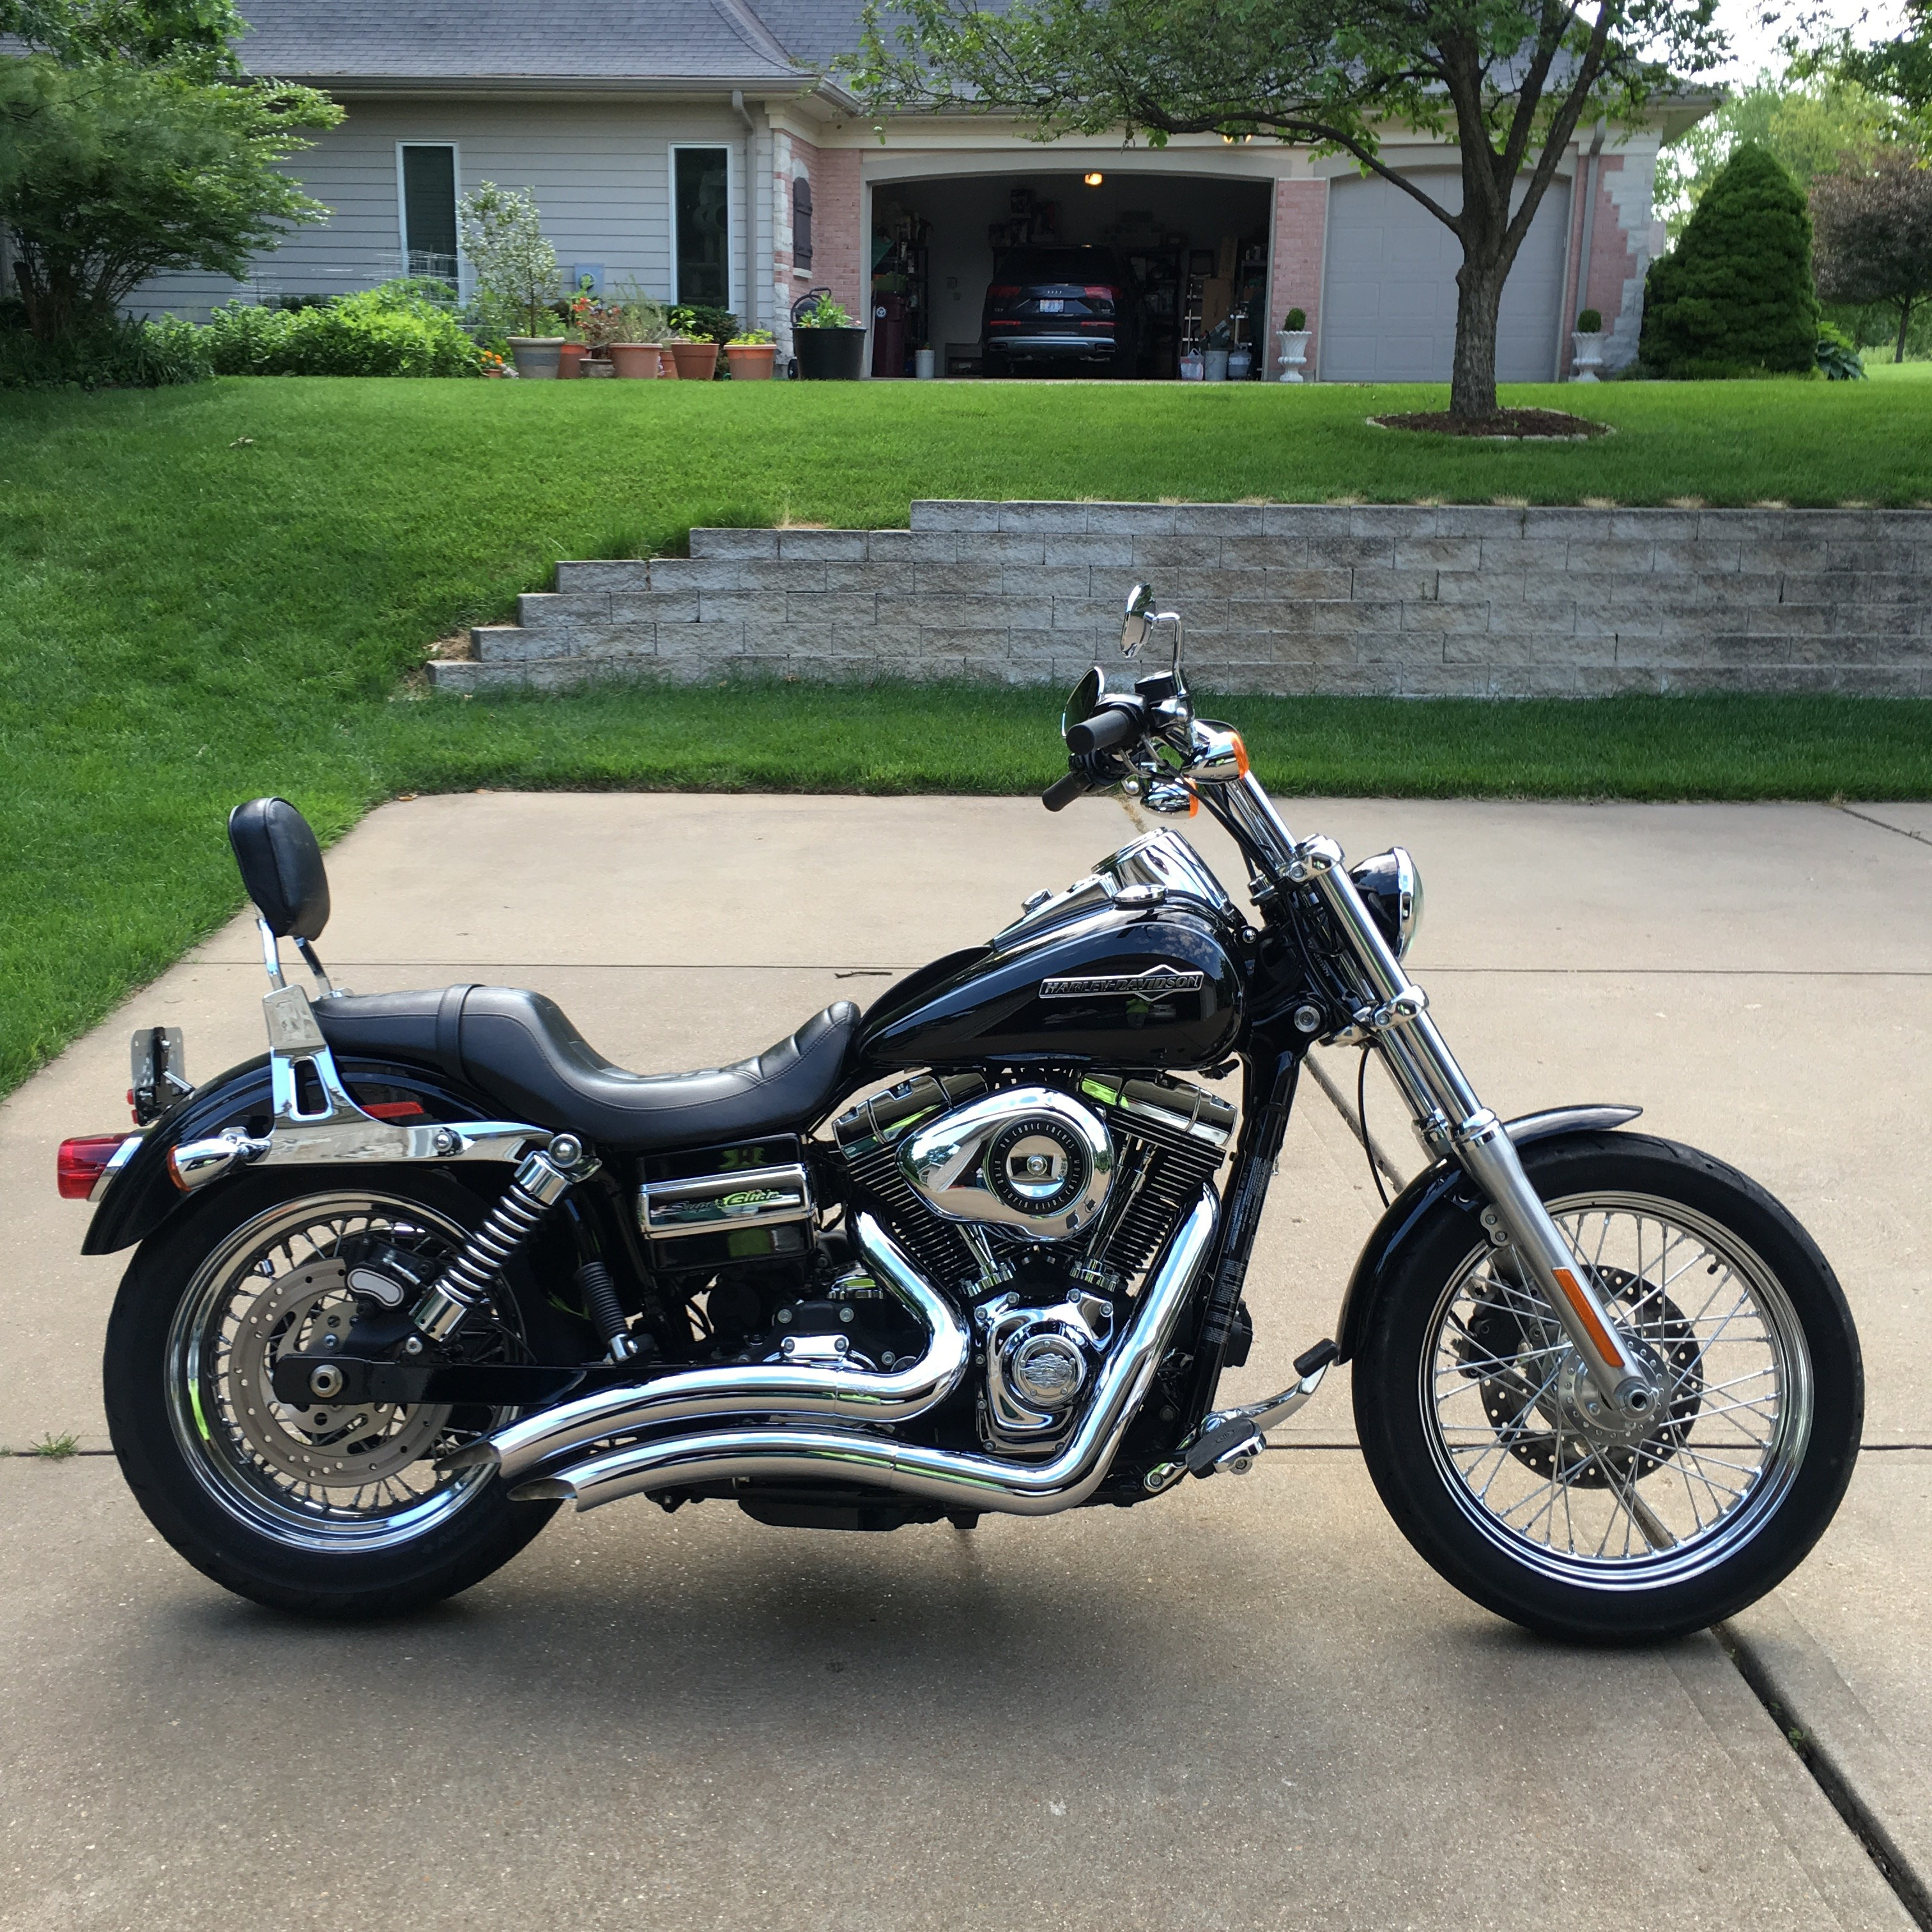 2012 harley davidson fxdc dyna super glide custom black fenton missouri 749032 cyclecrunch. Black Bedroom Furniture Sets. Home Design Ideas